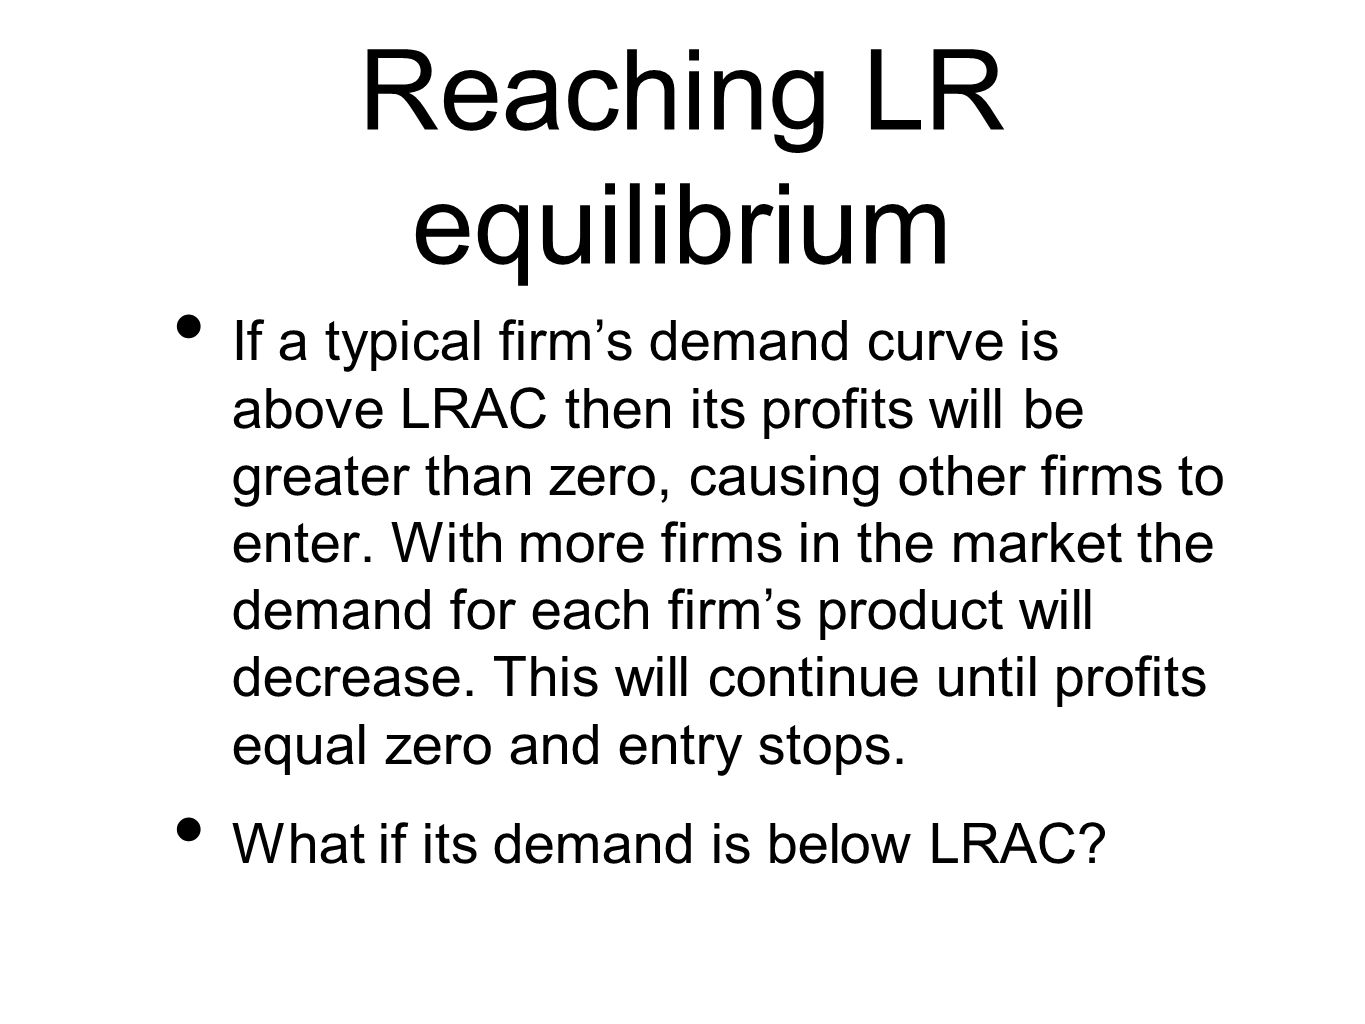 Reaching LR equilibrium If a typical firm's demand curve is above LRAC then its profits will be greater than zero, causing other firms to enter.